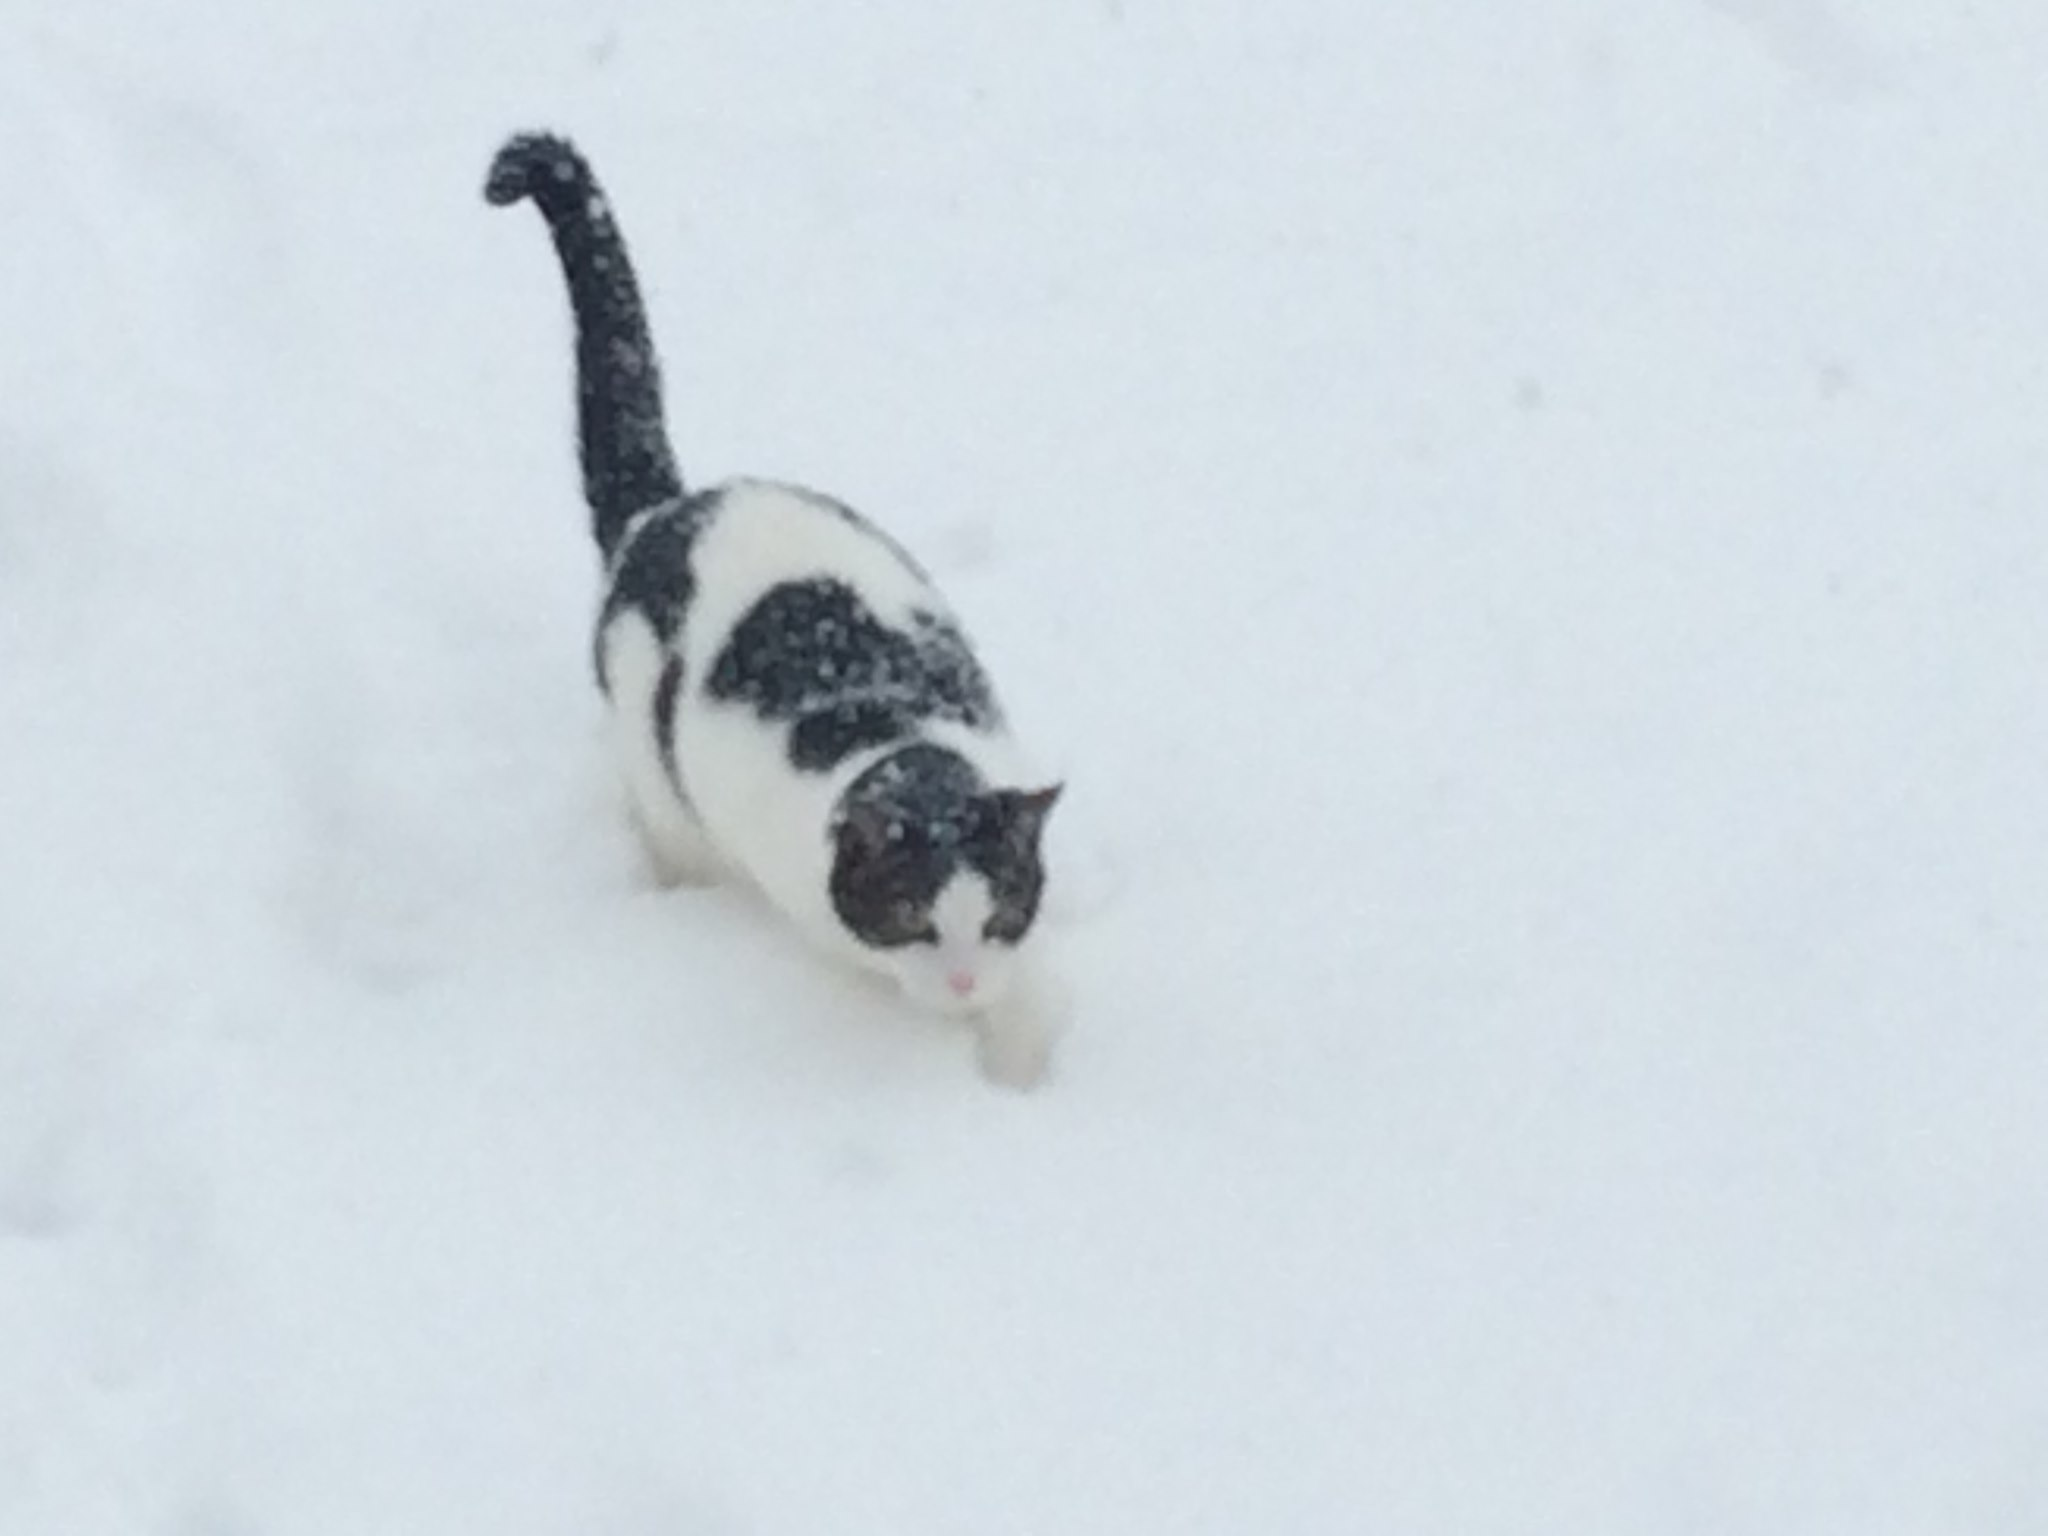 Cedric the cat in the snow